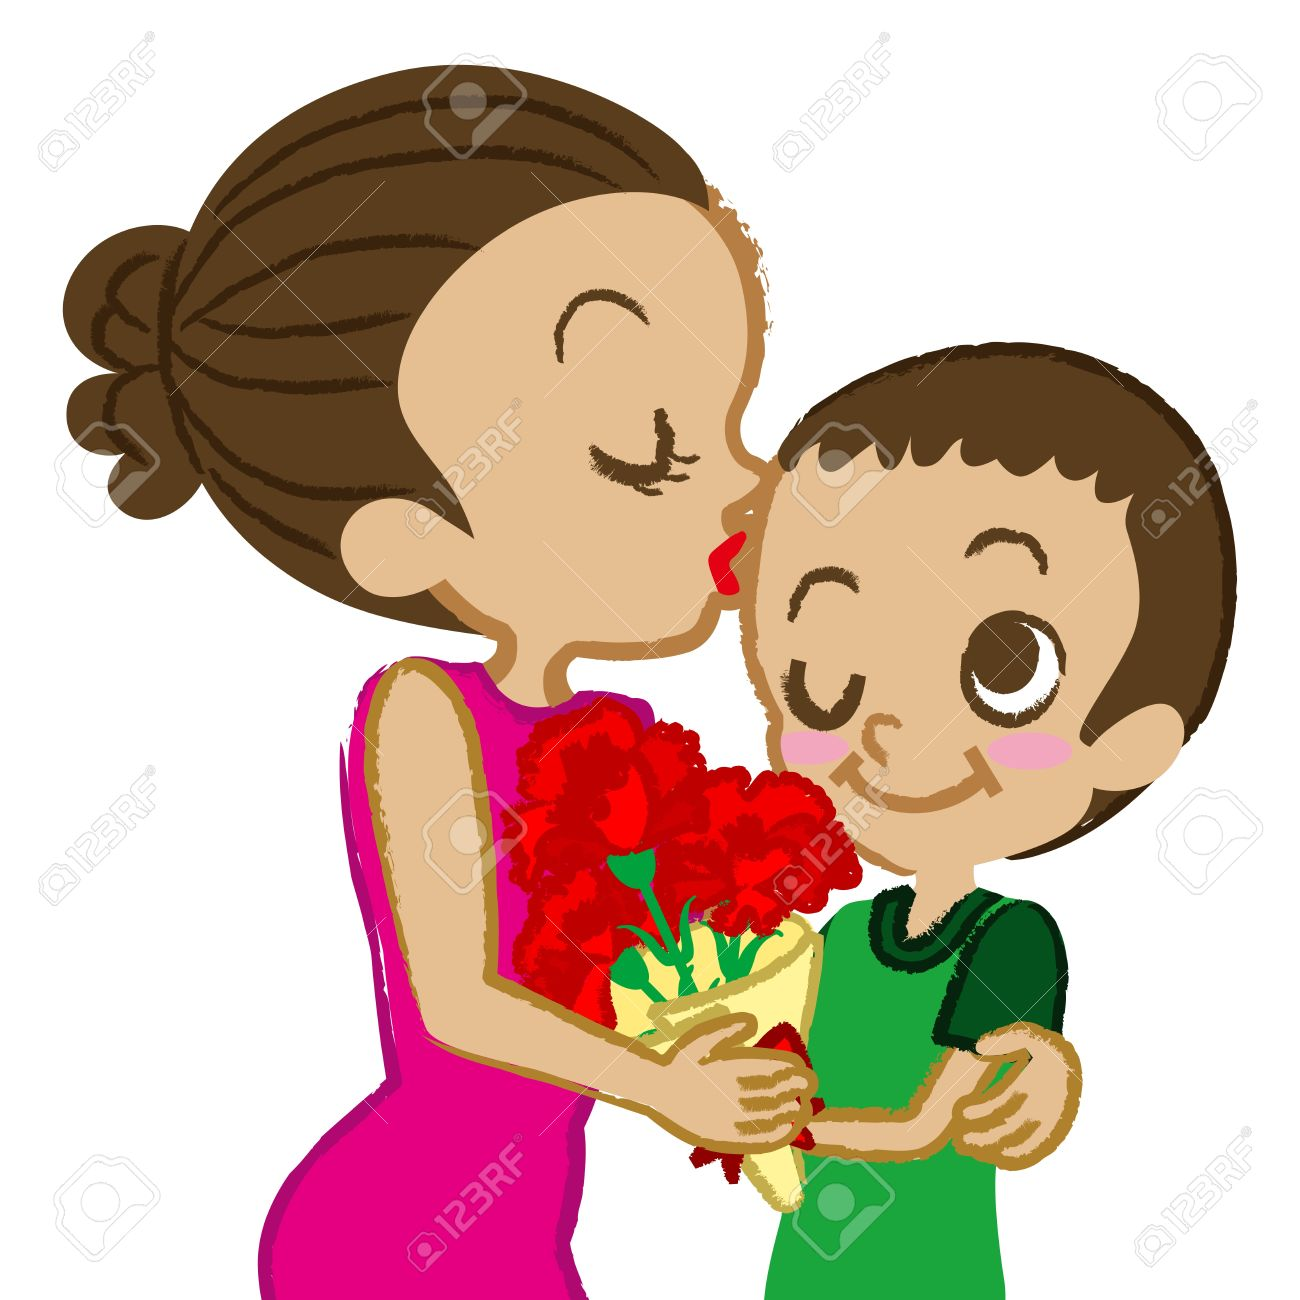 Mother kiss clipart free.